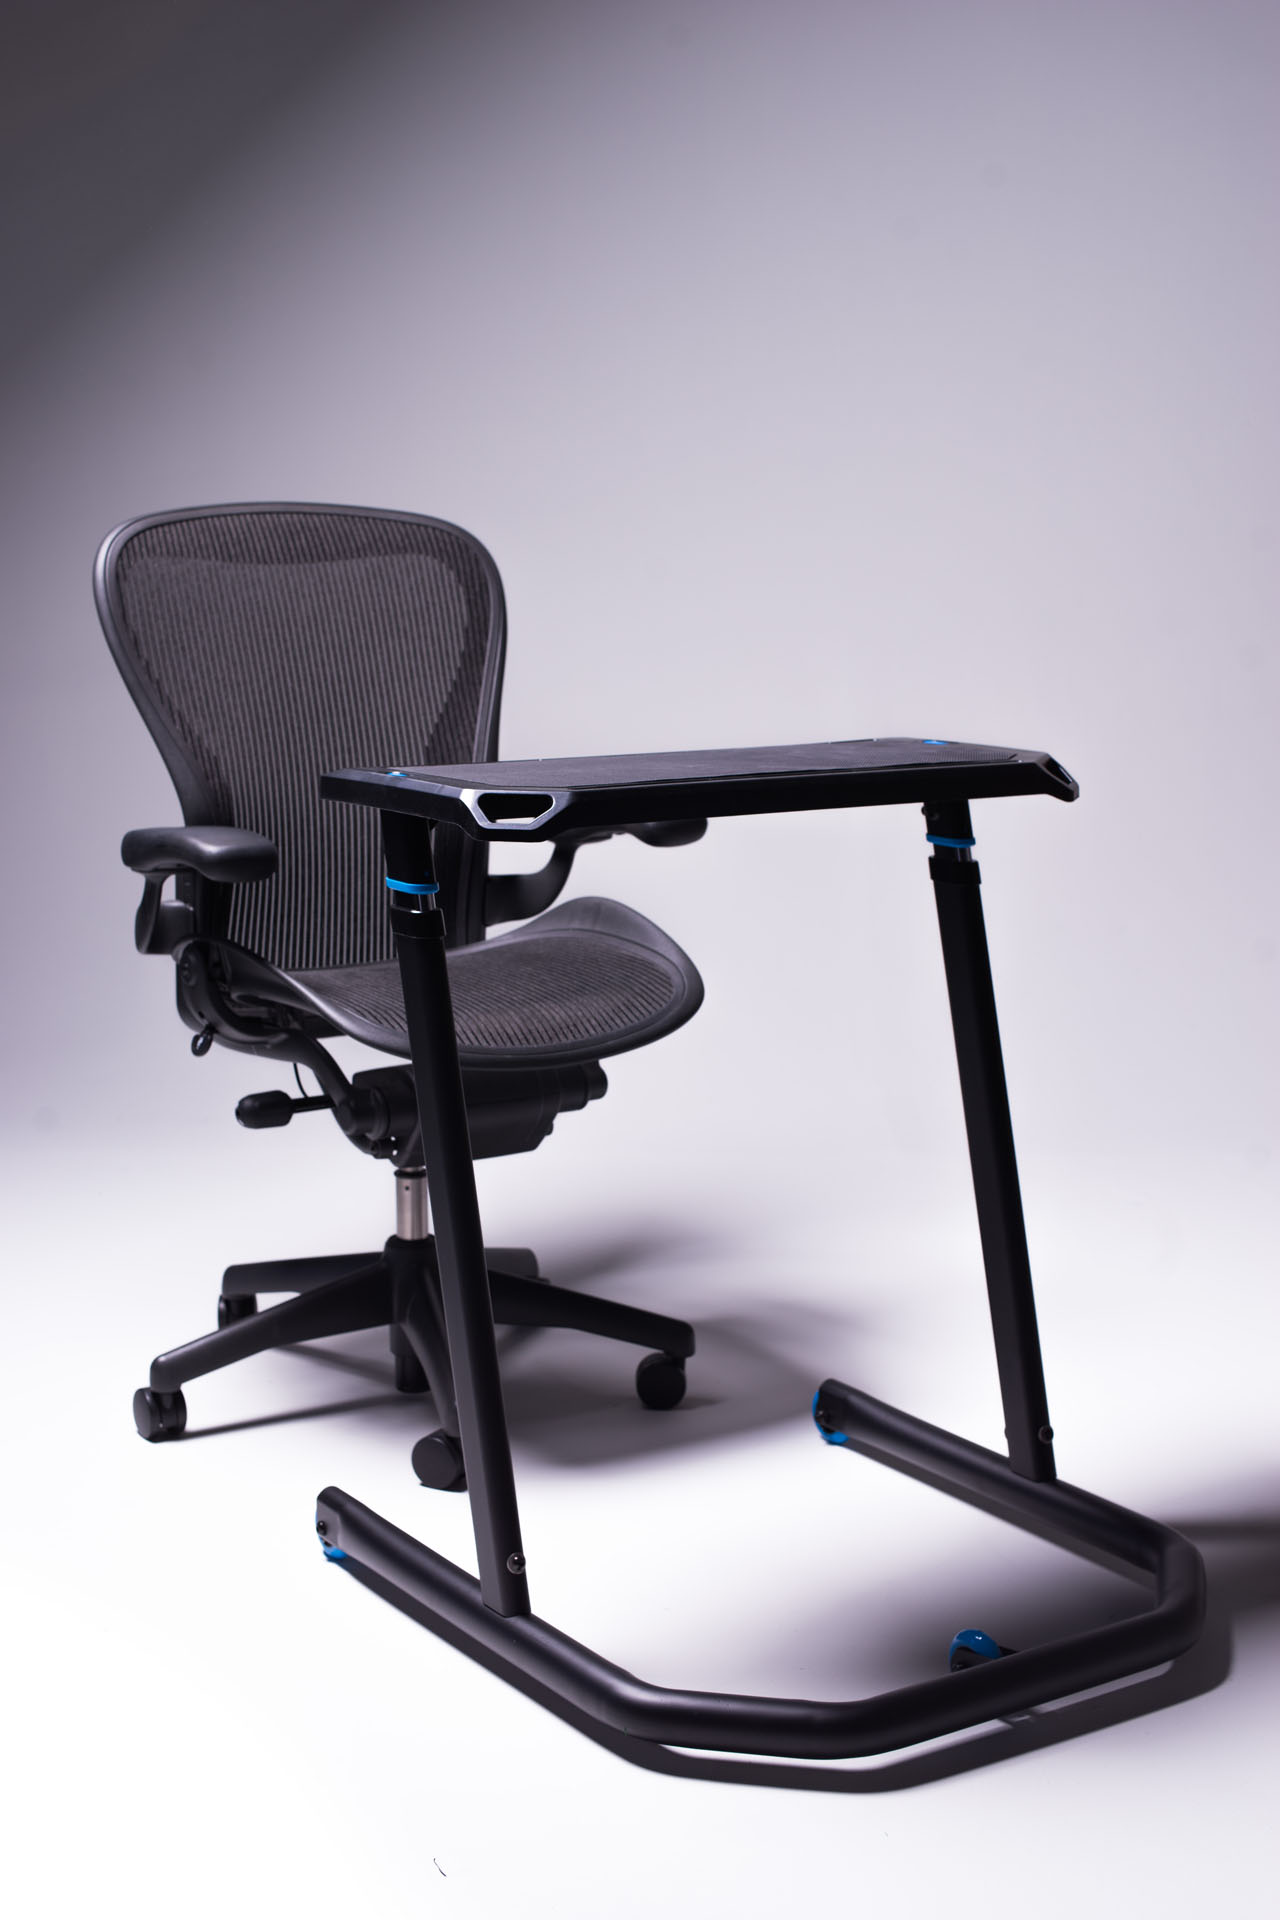 KICKR Indoor Cycling Desk-Picture-20